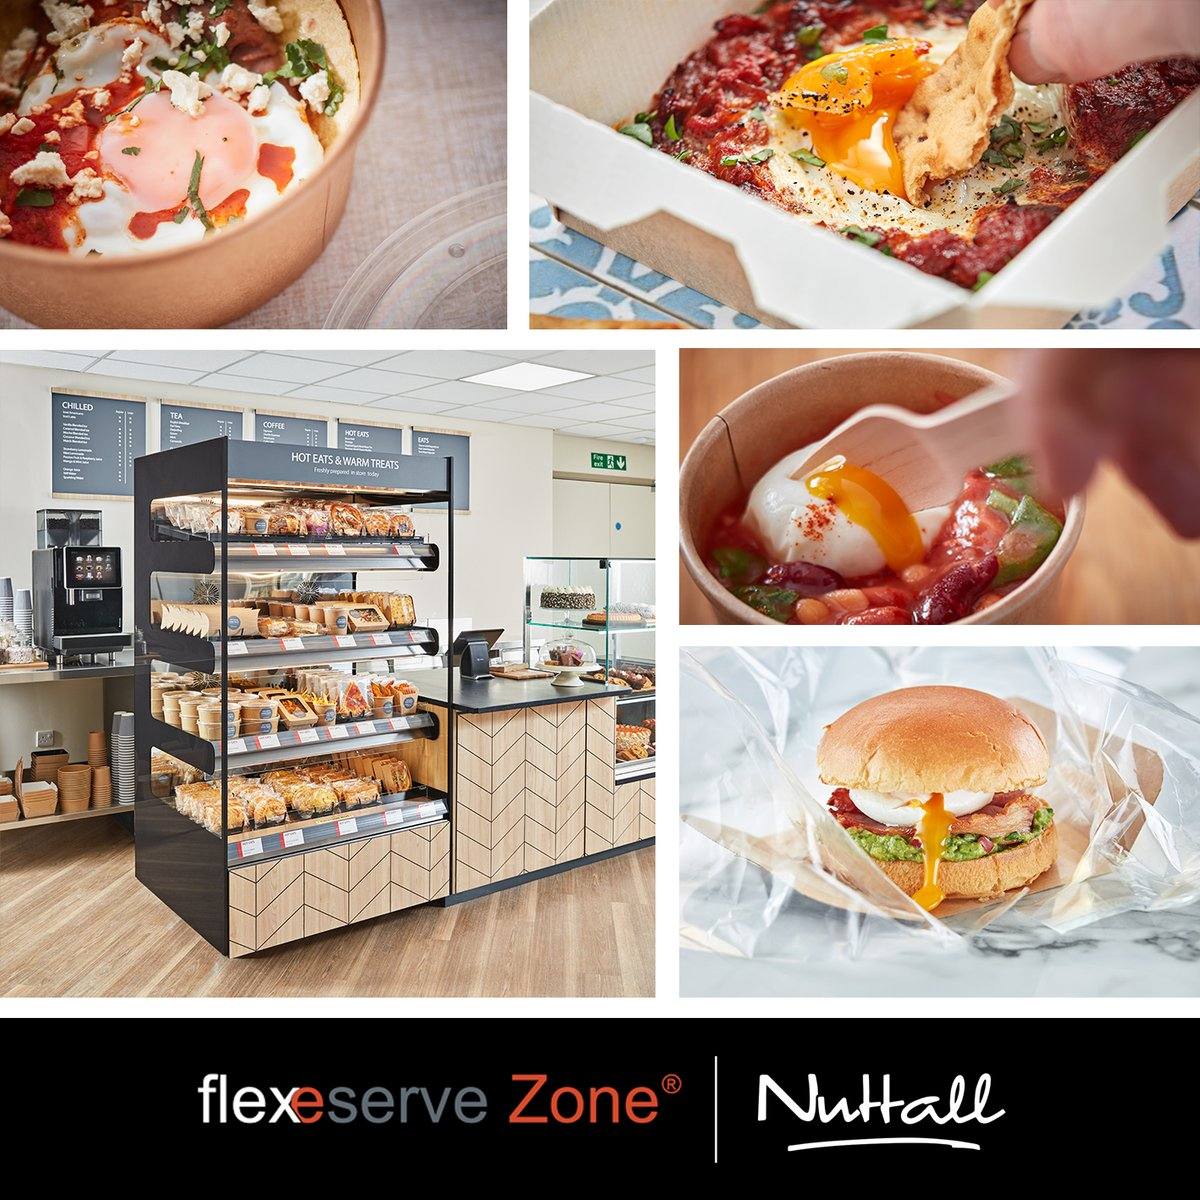 Happy #NationalEggDay! Eggs can be a challenge in the world of hot food-to-go, but we've mastered the art! Only using the unique technology of Flexeserve Zone® can you hot-hold a poached egg while maintaining a beautifully runny yolk ... https://t.co/70m0pdlQEk https://t.co/b35dTXO3oT